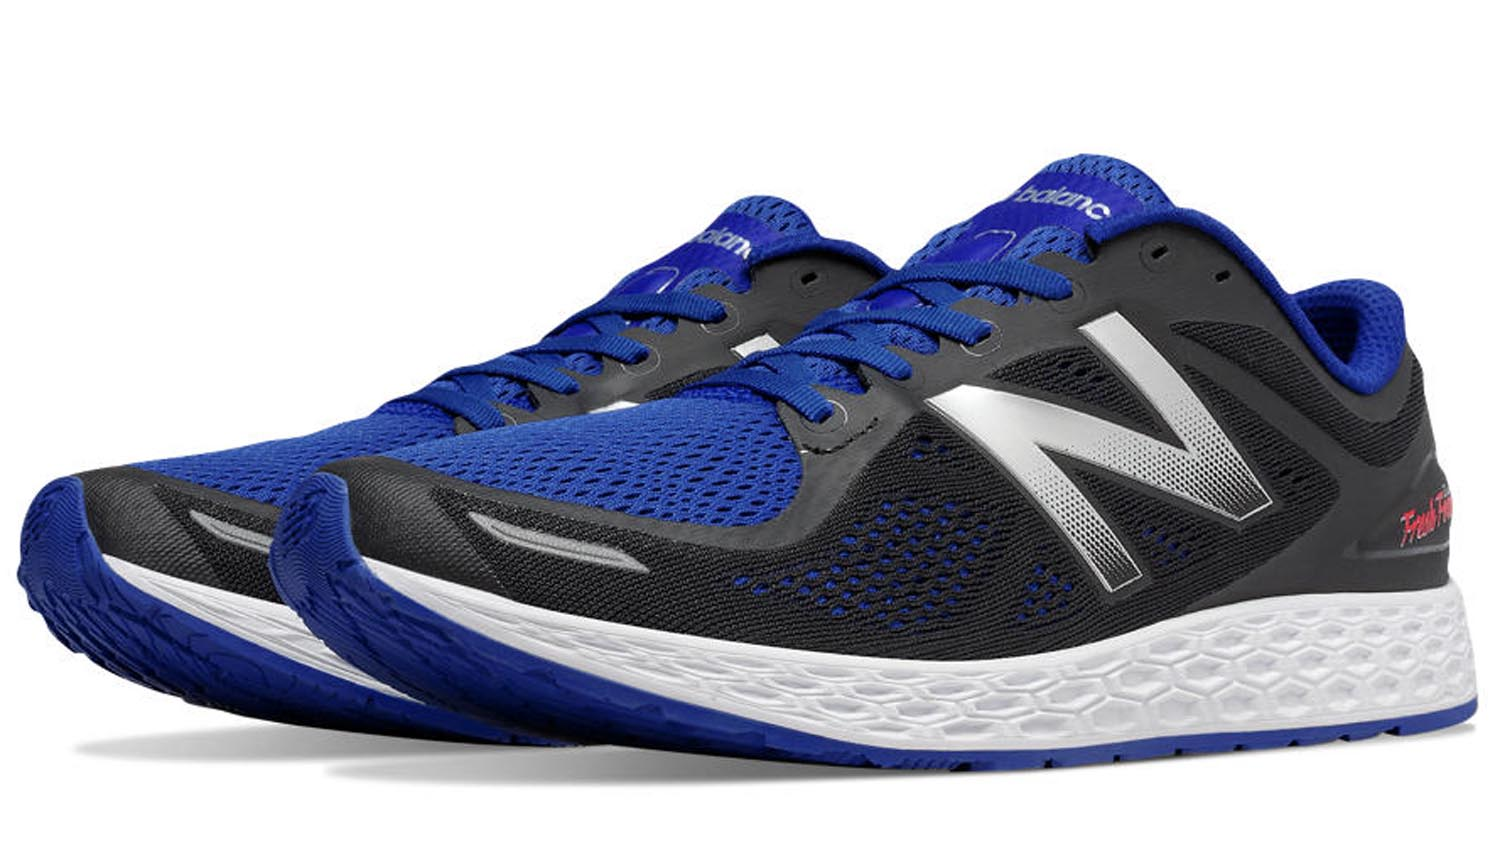 11 Best New Balance Men's Running Shoes for 2018